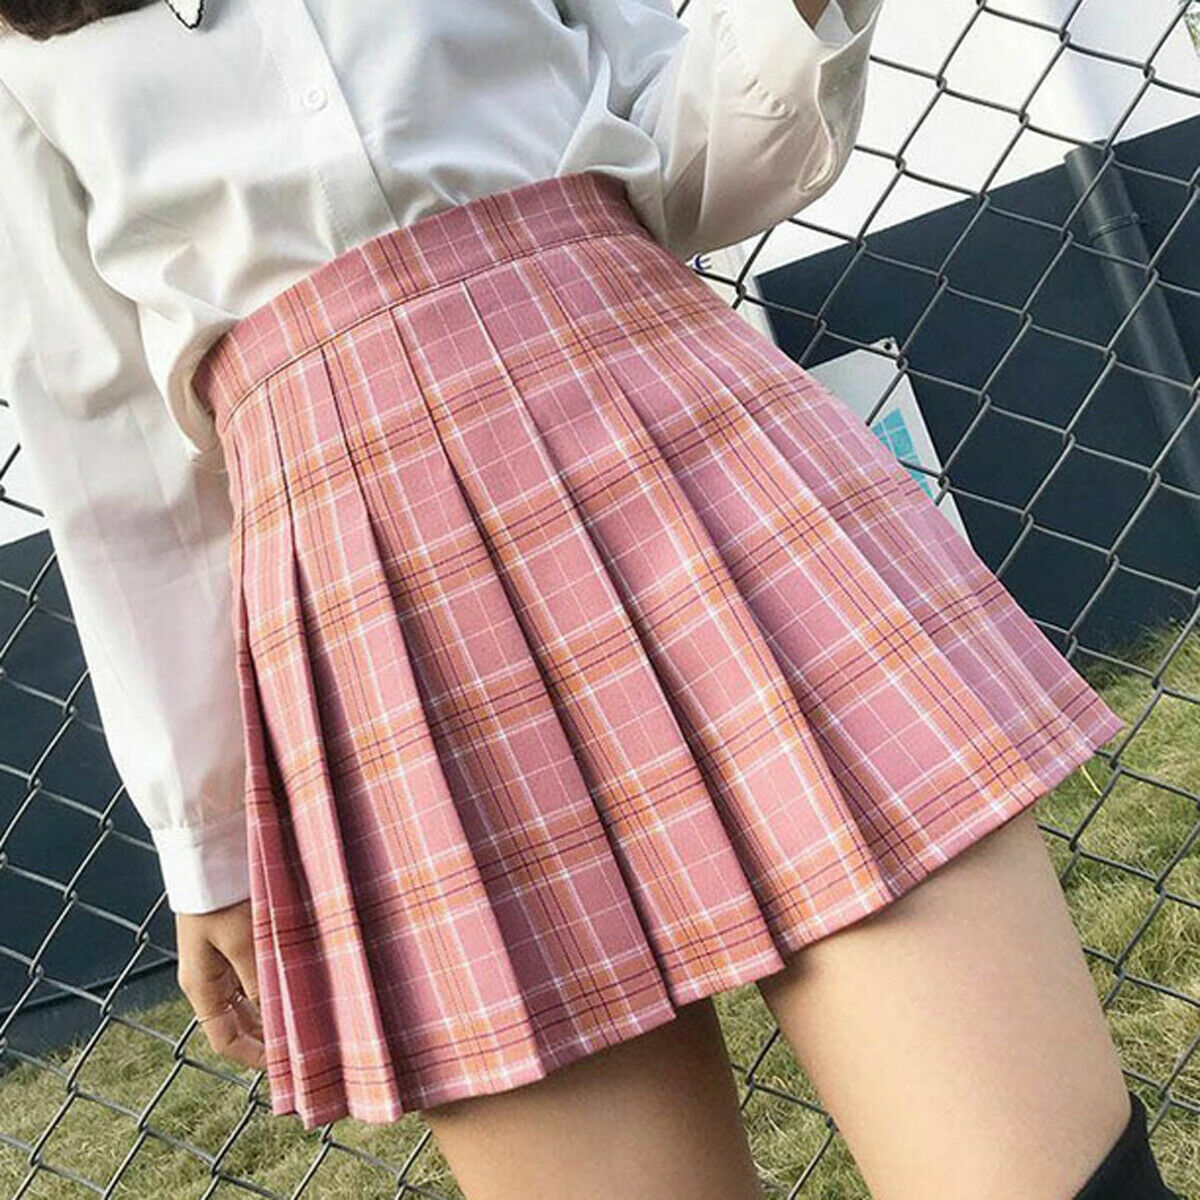 Women's Sexy High Waist Micro Mini Tennis Skirt Pleated Casual Wear Side Zip Up Plaid Students Short Skirts